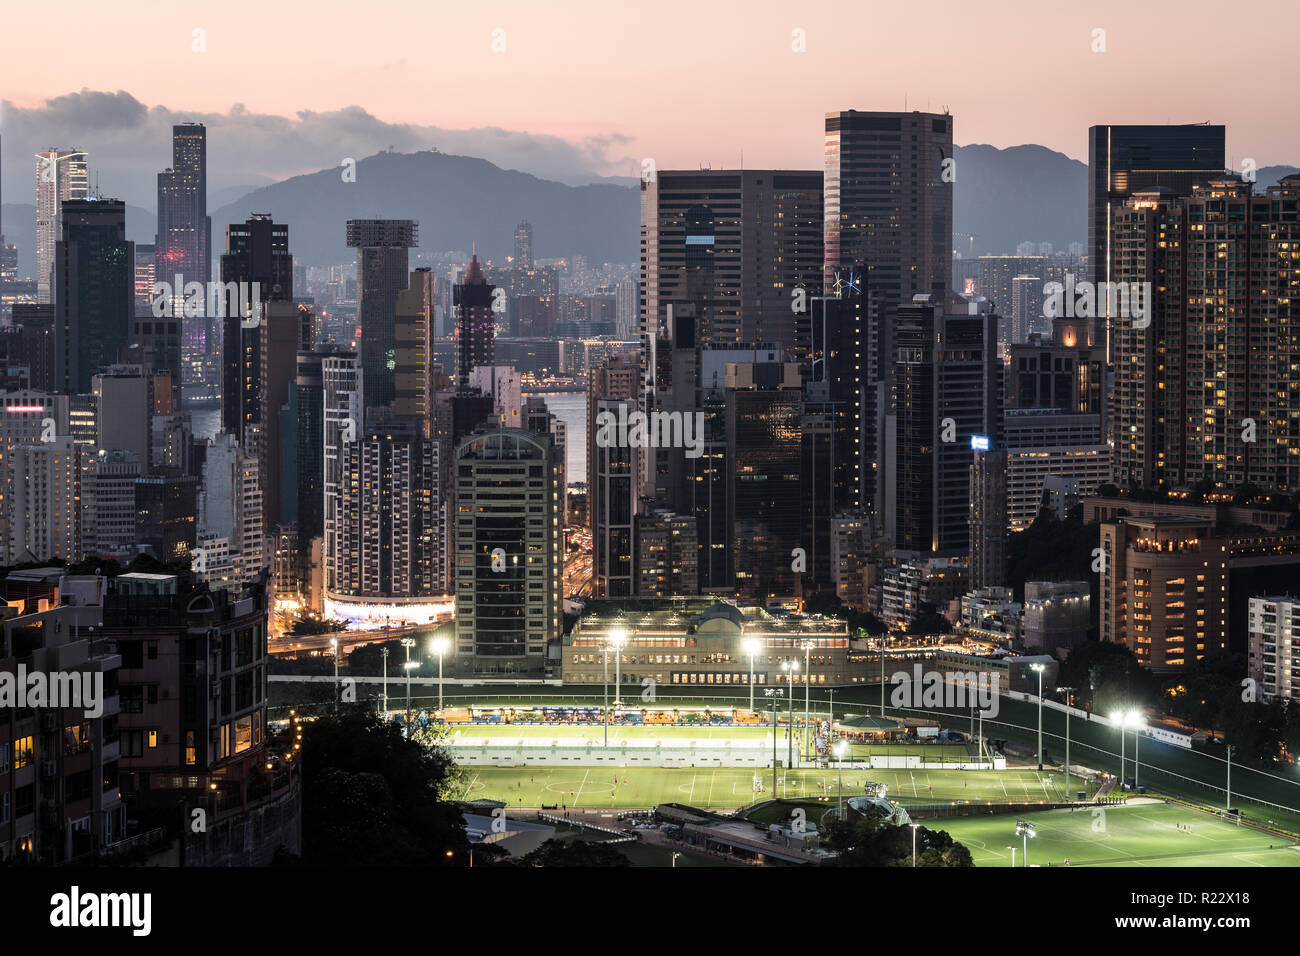 Sunset over Happy Valley district, famous for its horse racecourse  in Hong Kong island, Hong Kong SAR in China - Stock Image